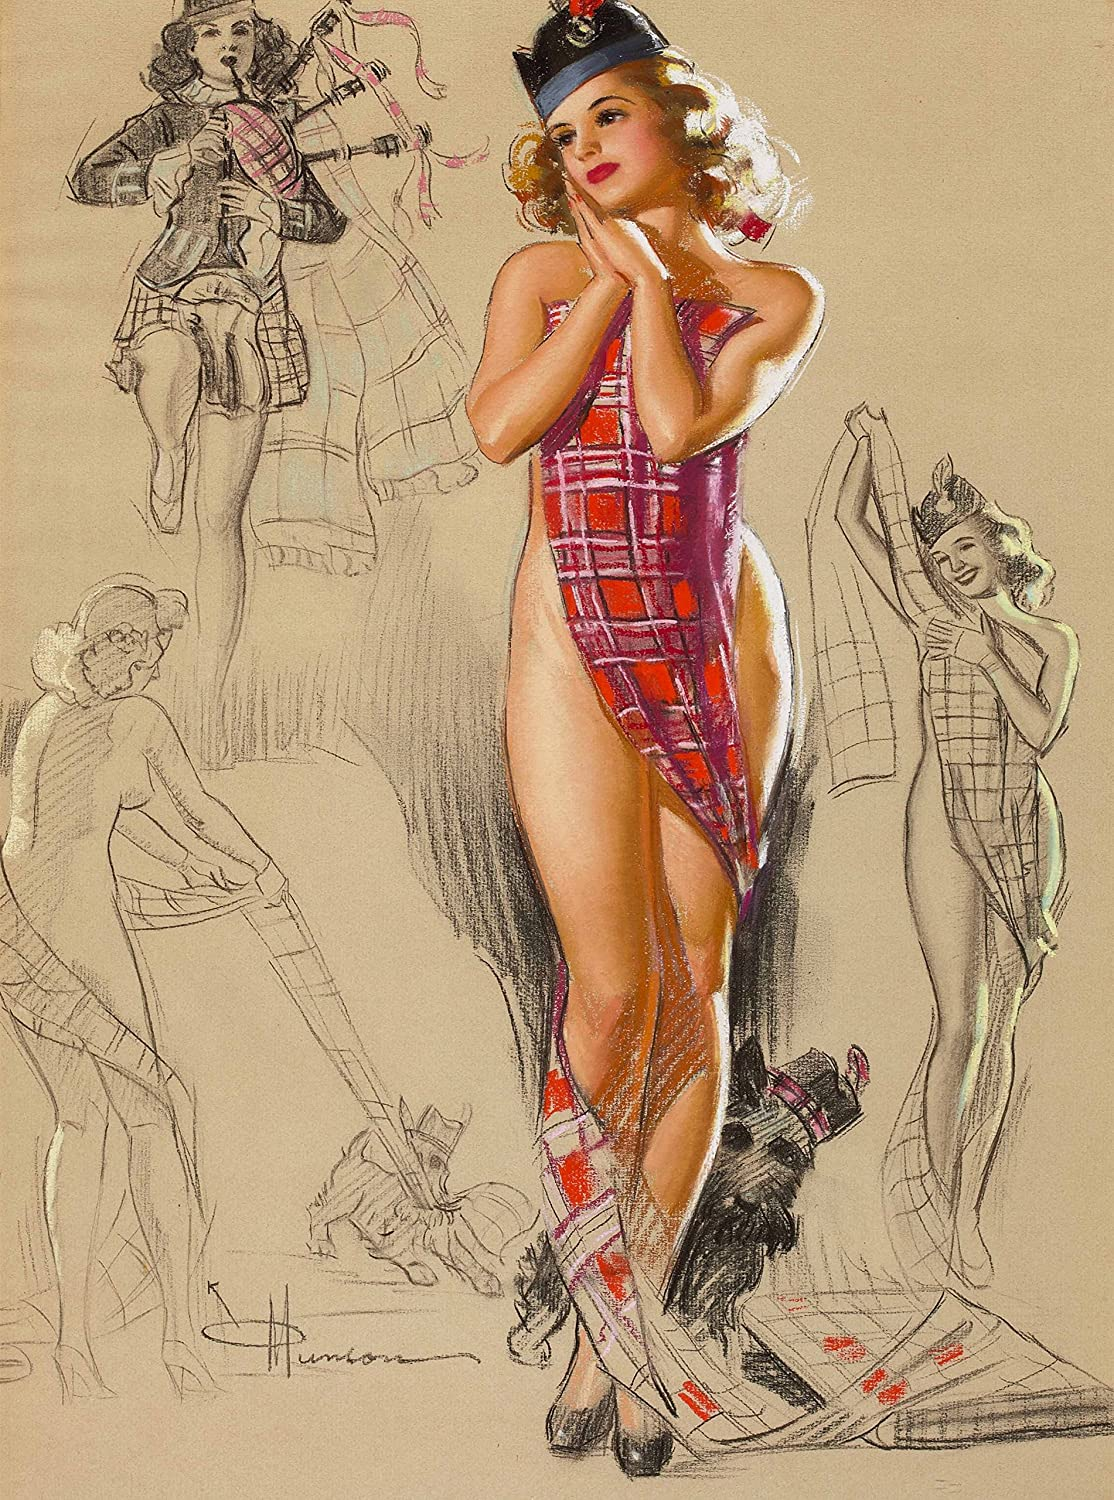 1940's Pin-Up Girl Plaid Tartan Wee Scottish Lassie & Scottish Terrier Dog Scotland Knute Munson Vintage Home Pin Up Collectible Wall Decor Art Poster Picture Print. Measures 10 x 13.5 inches